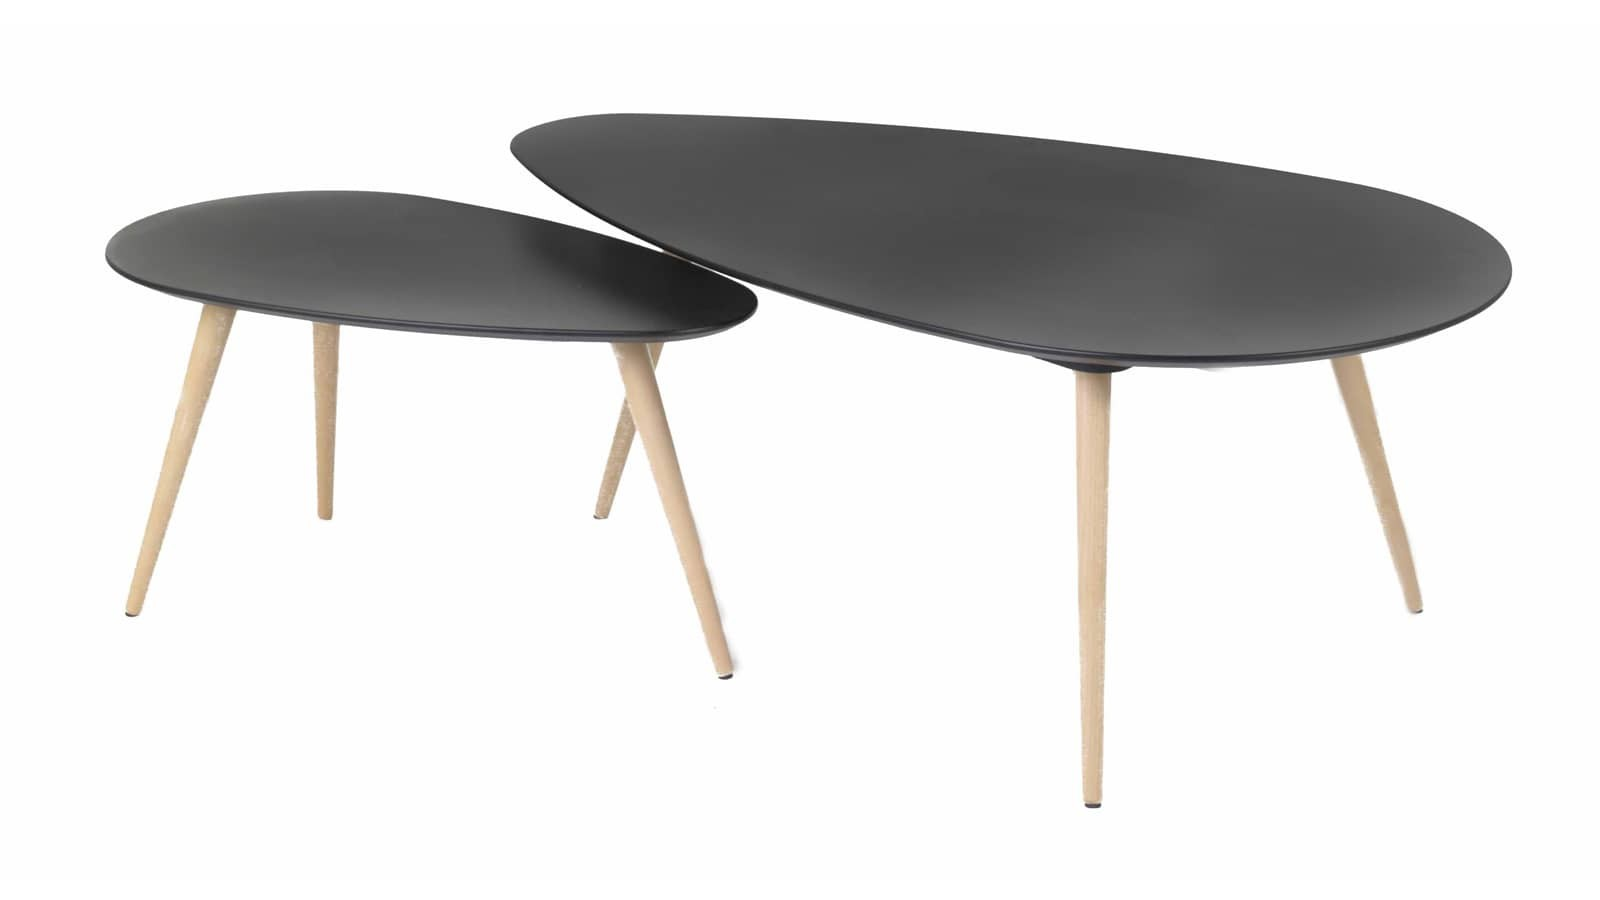 Table Scandinave Noire Set De 2 Tables Basses Gigognes Scandinaves En Bouleau Noir